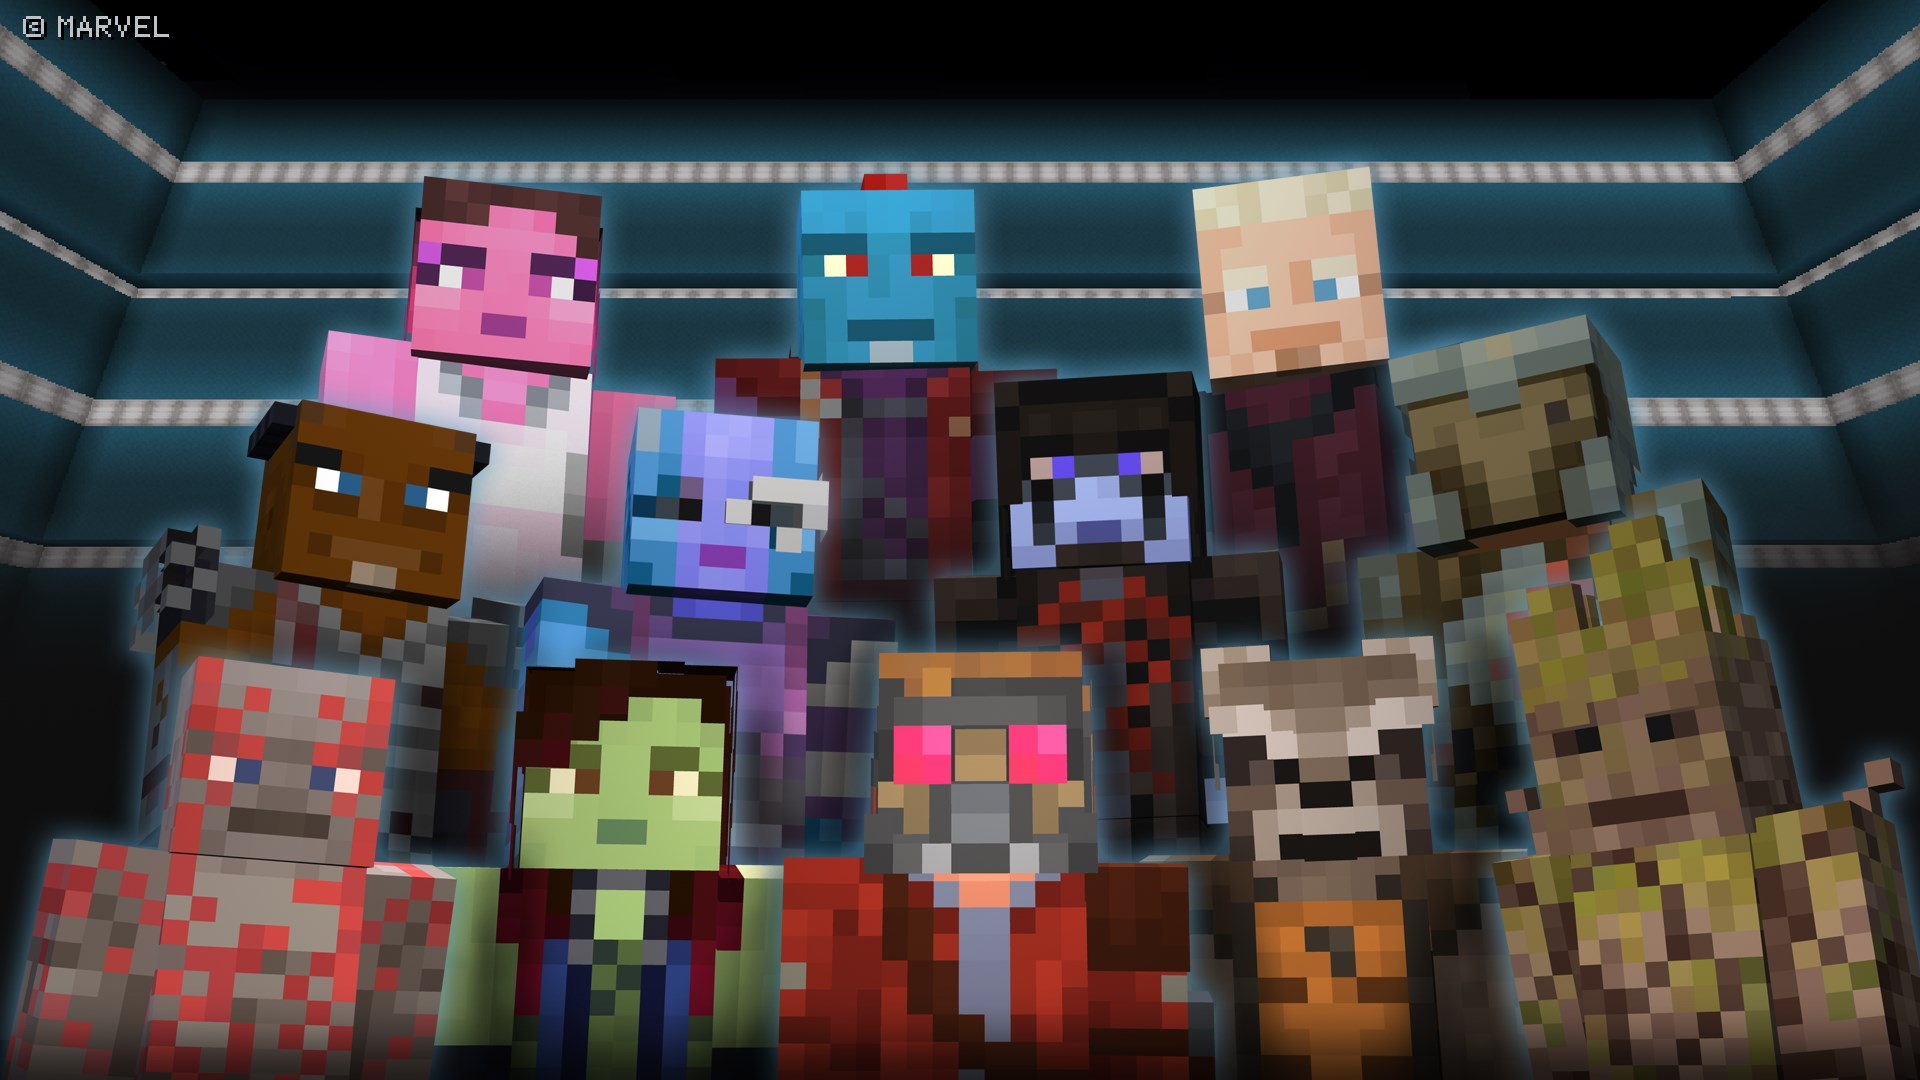 Marvel Guardians of the Galaxy Skin Pack